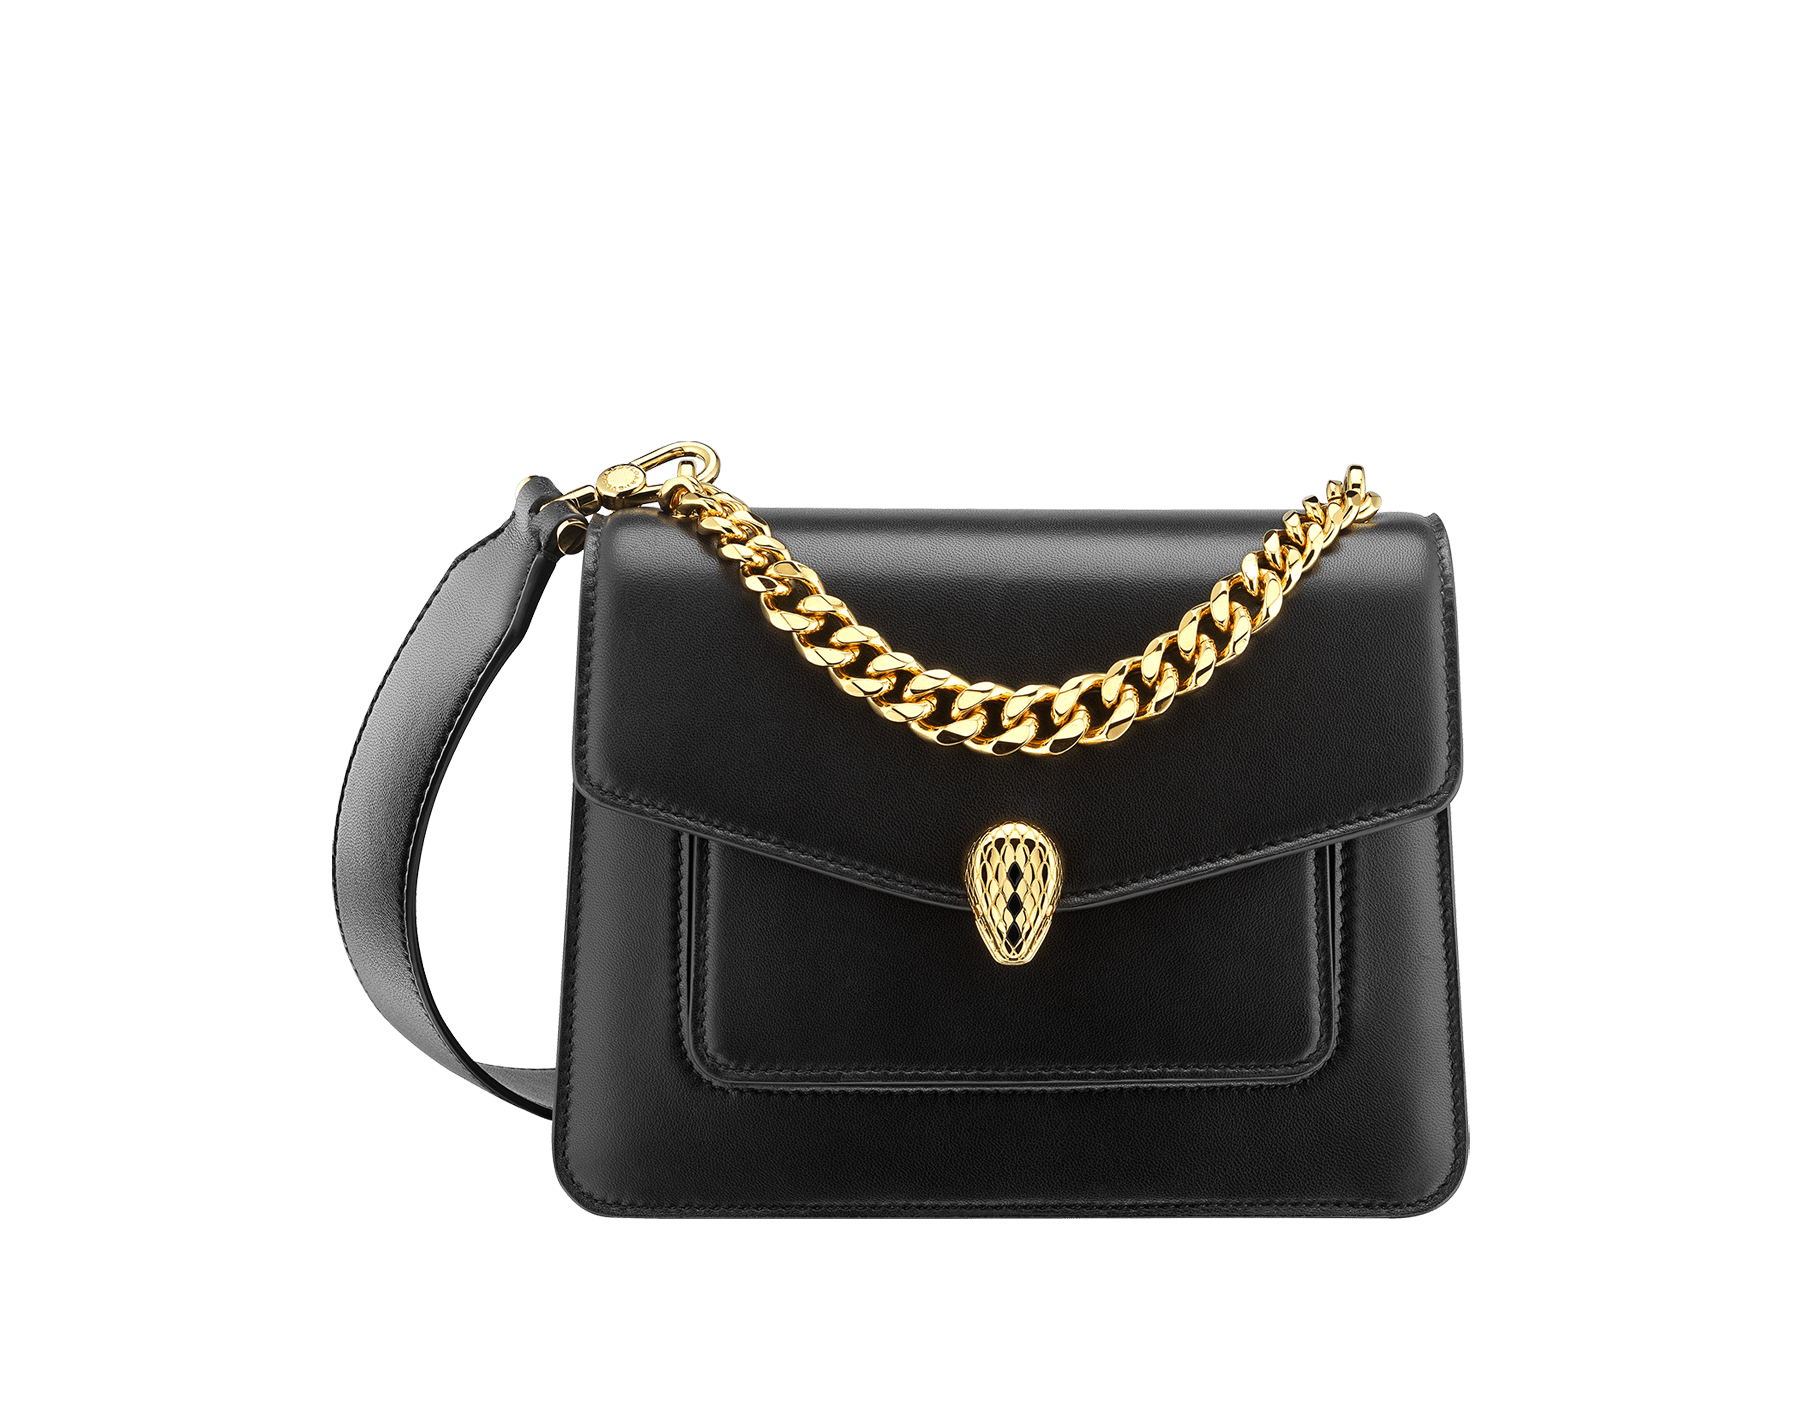 """""""Serpenti Forever"""" small maxi chain crossbody bag in black nappa leather, with black nappa leather inner lining. New Serpenti head closure in gold-plated brass, finished with small black onyx scales in the middle, and red enamel eyes. 291050 image 1"""